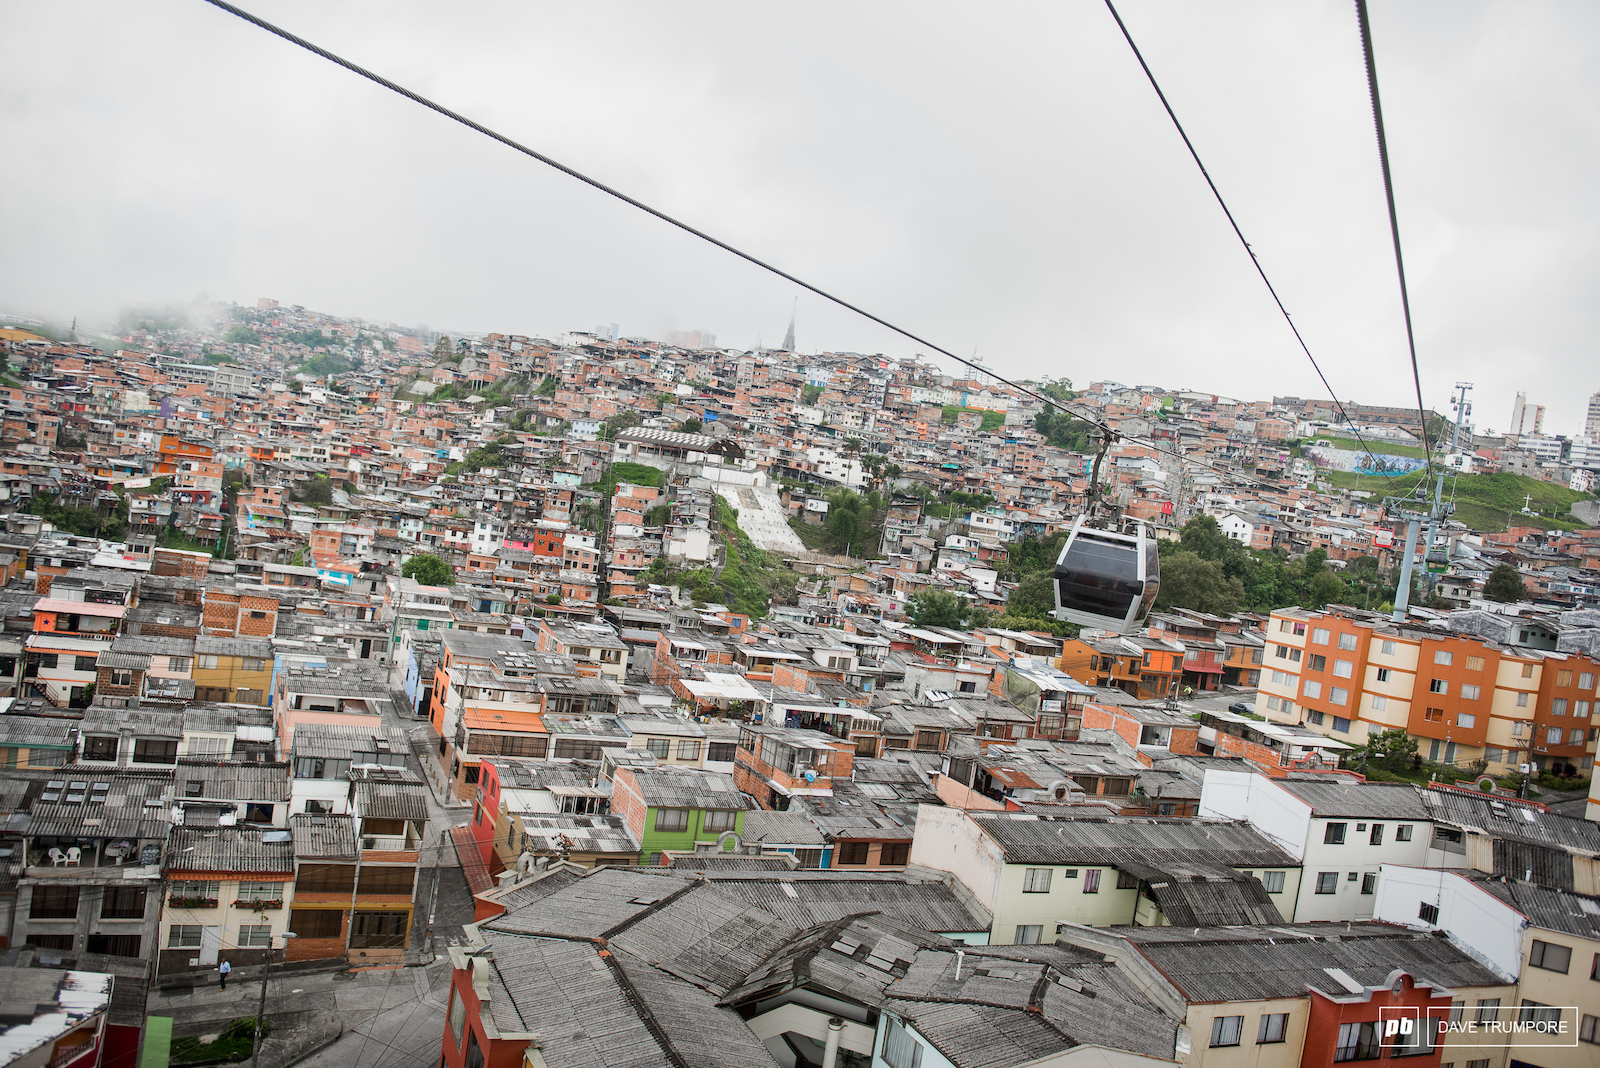 The unique gondola high above the city of Manizales takes riders up to the top of stage 1.